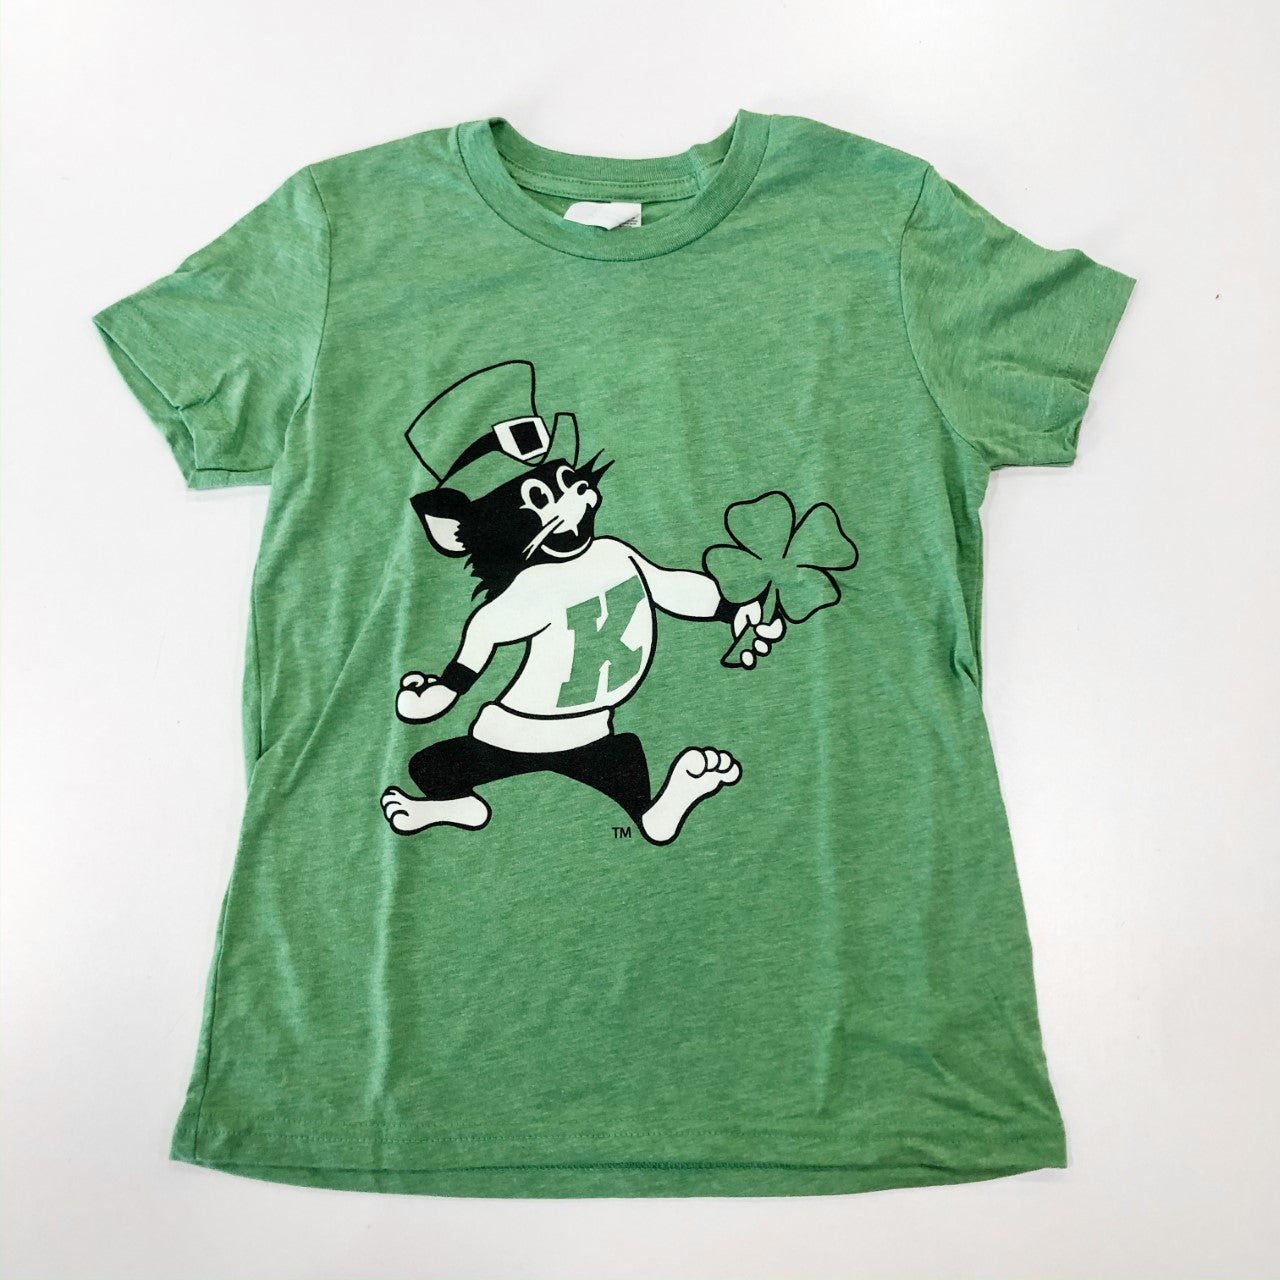 Kansas State Wildcats Youth Willie St. Patricks Day Tee - 2005786